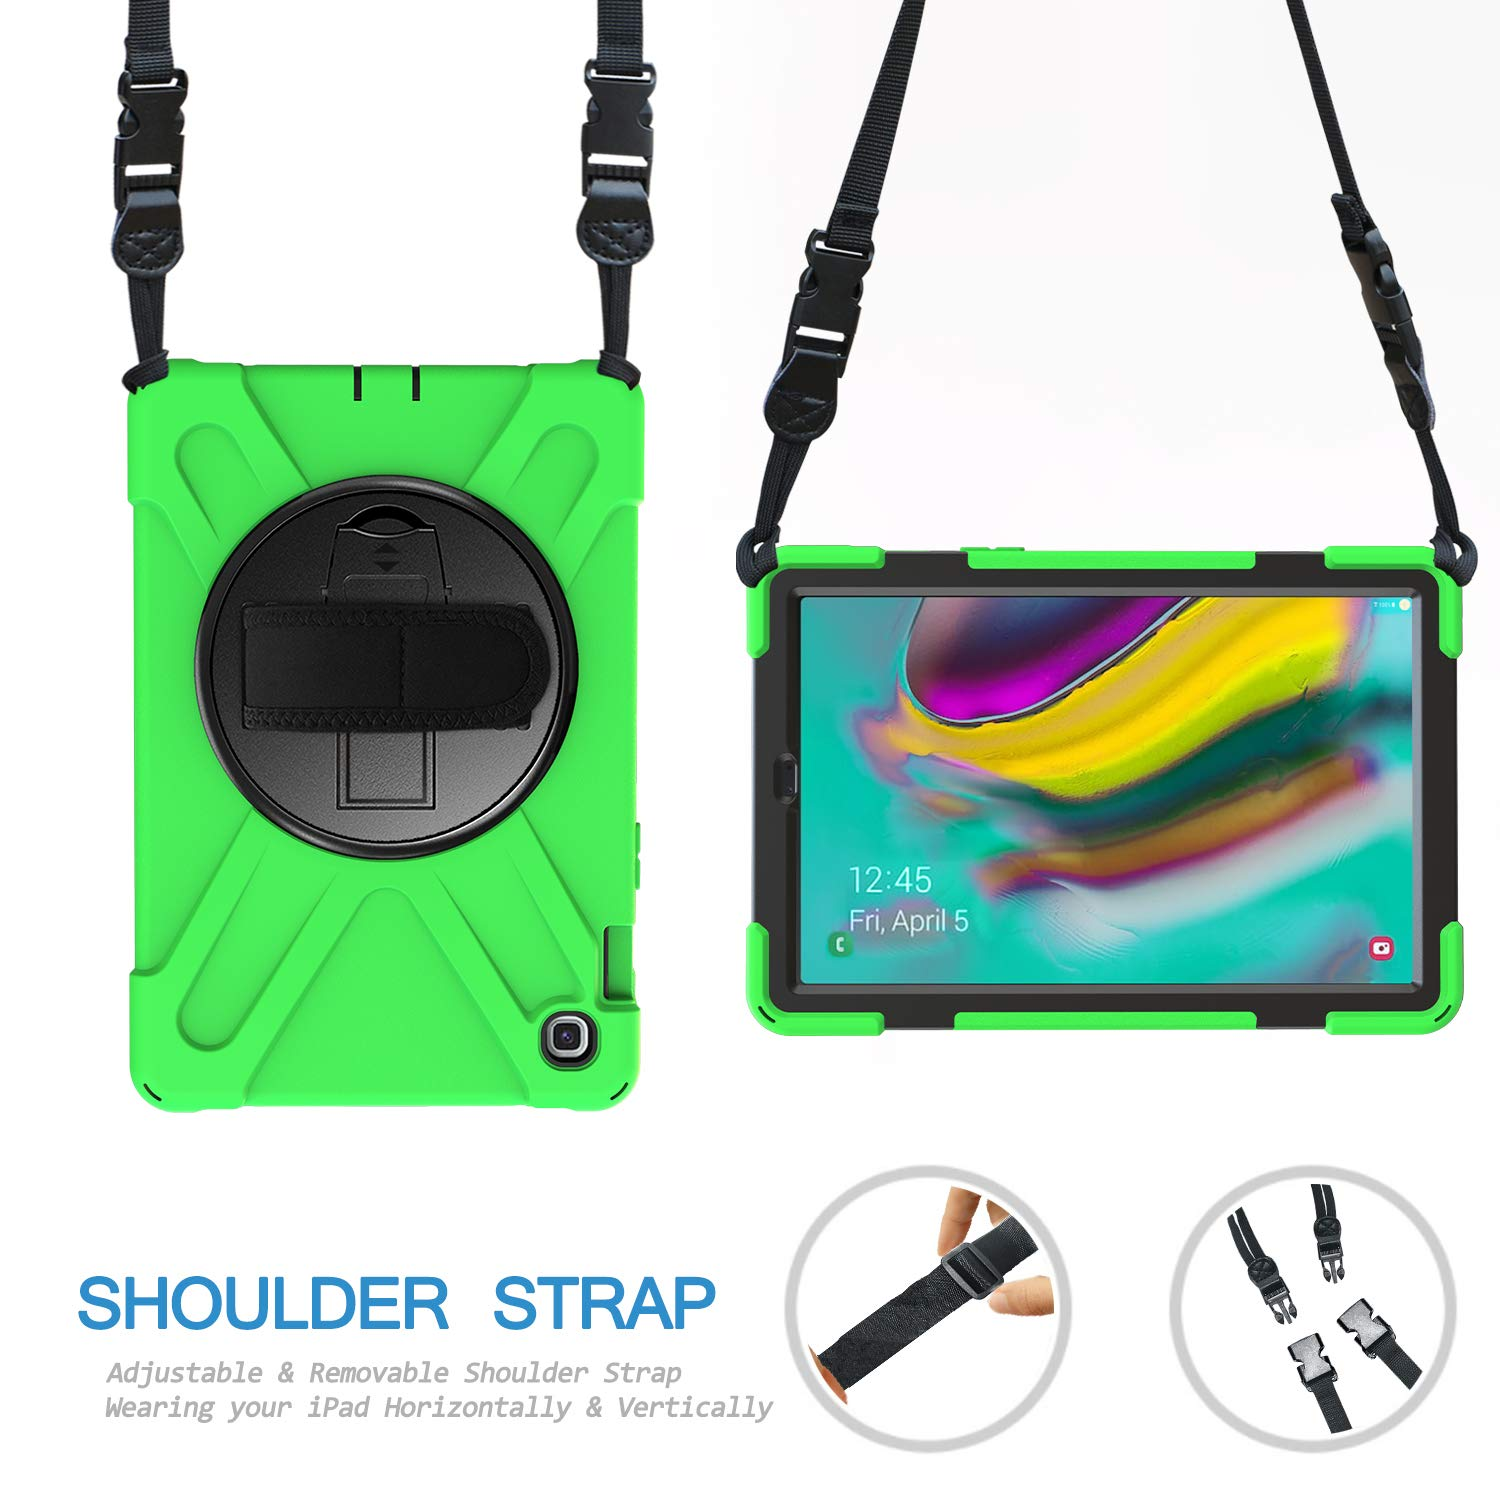 TH000 Case for Samsung Galaxy Tab S5e T720 Shockproof Full Body Heavy Duty Rugged Protective Cover Hand Grip /& Shoulder Neck Strap 10.5 inch SM-T720 725 2019 Kickstand Black